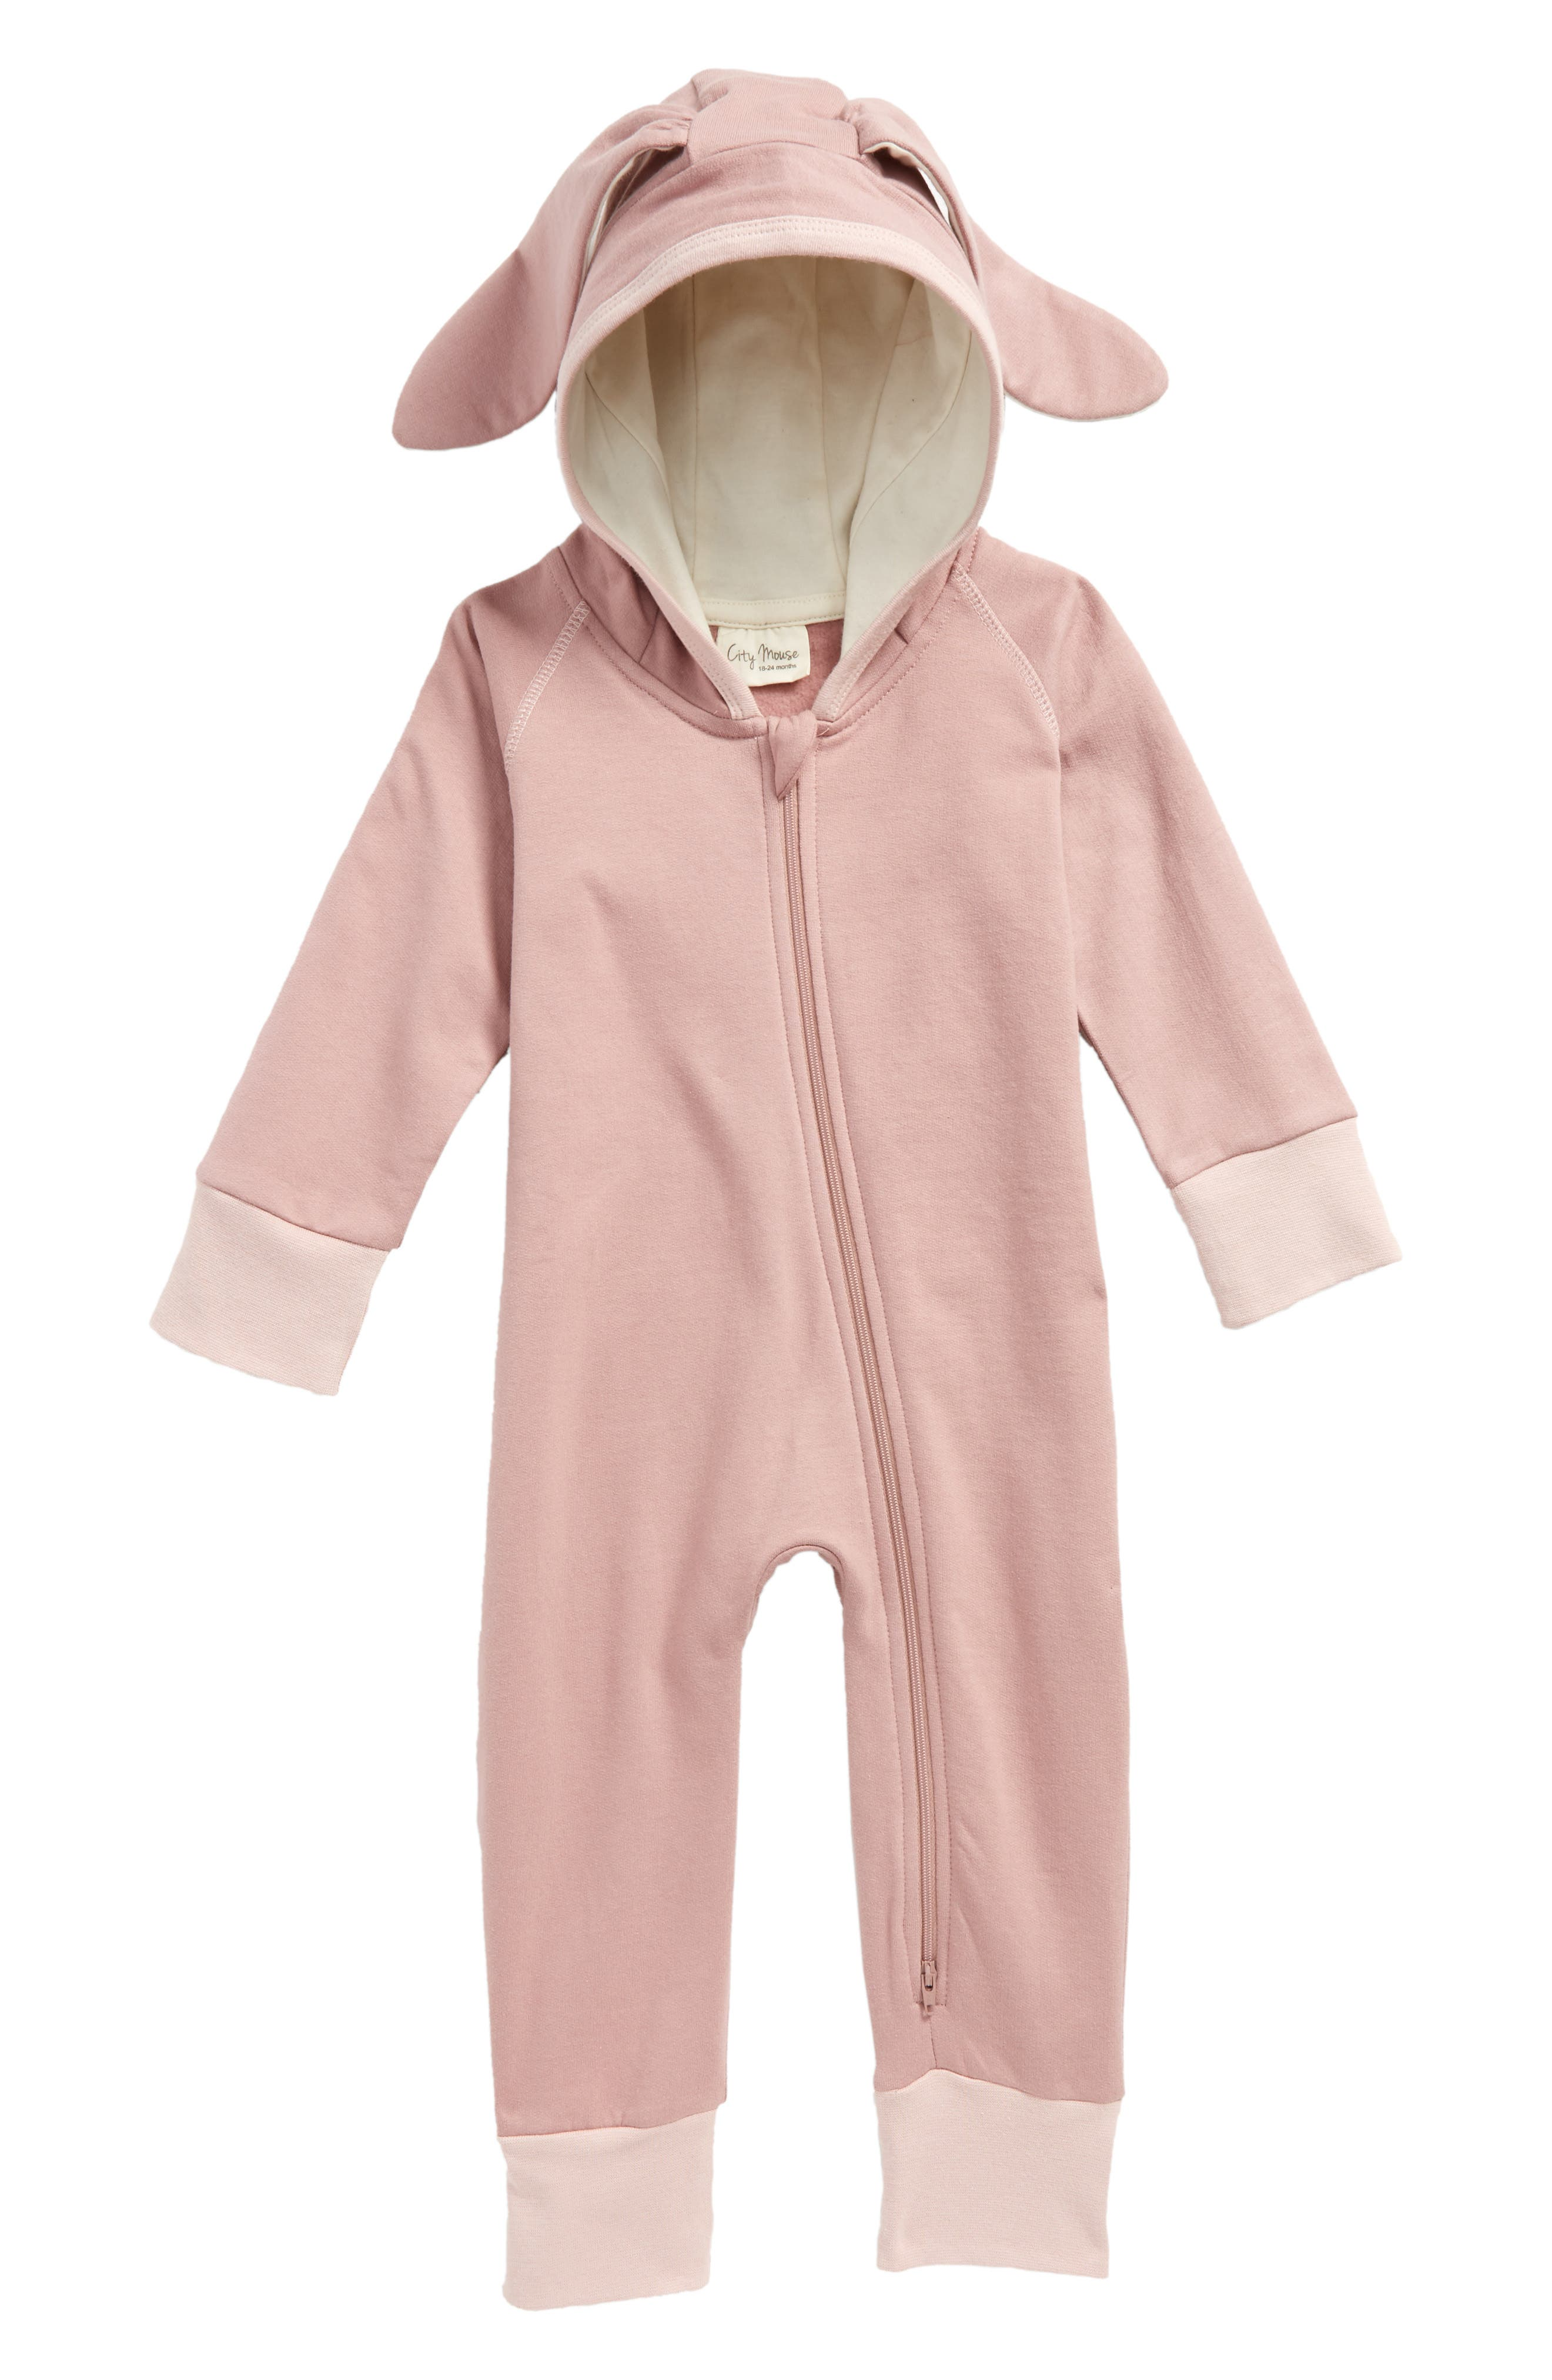 Bunny Organic Cotton Hooded Romper,                             Main thumbnail 1, color,                             650